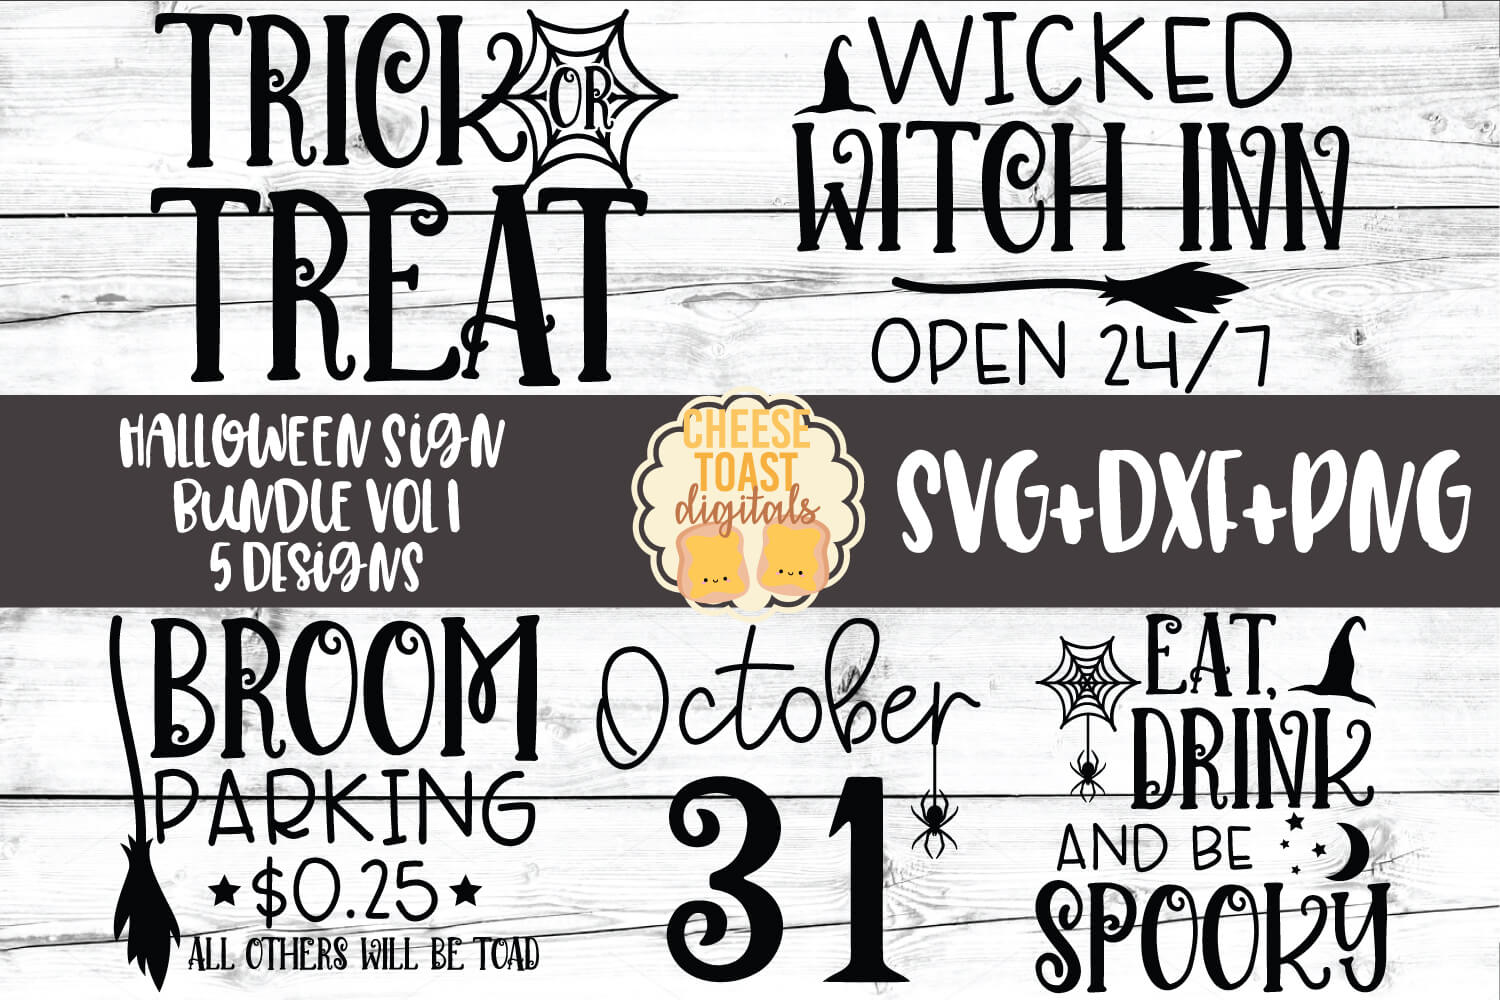 Halloween Sign Bundle Vol 1 - 5 Designs